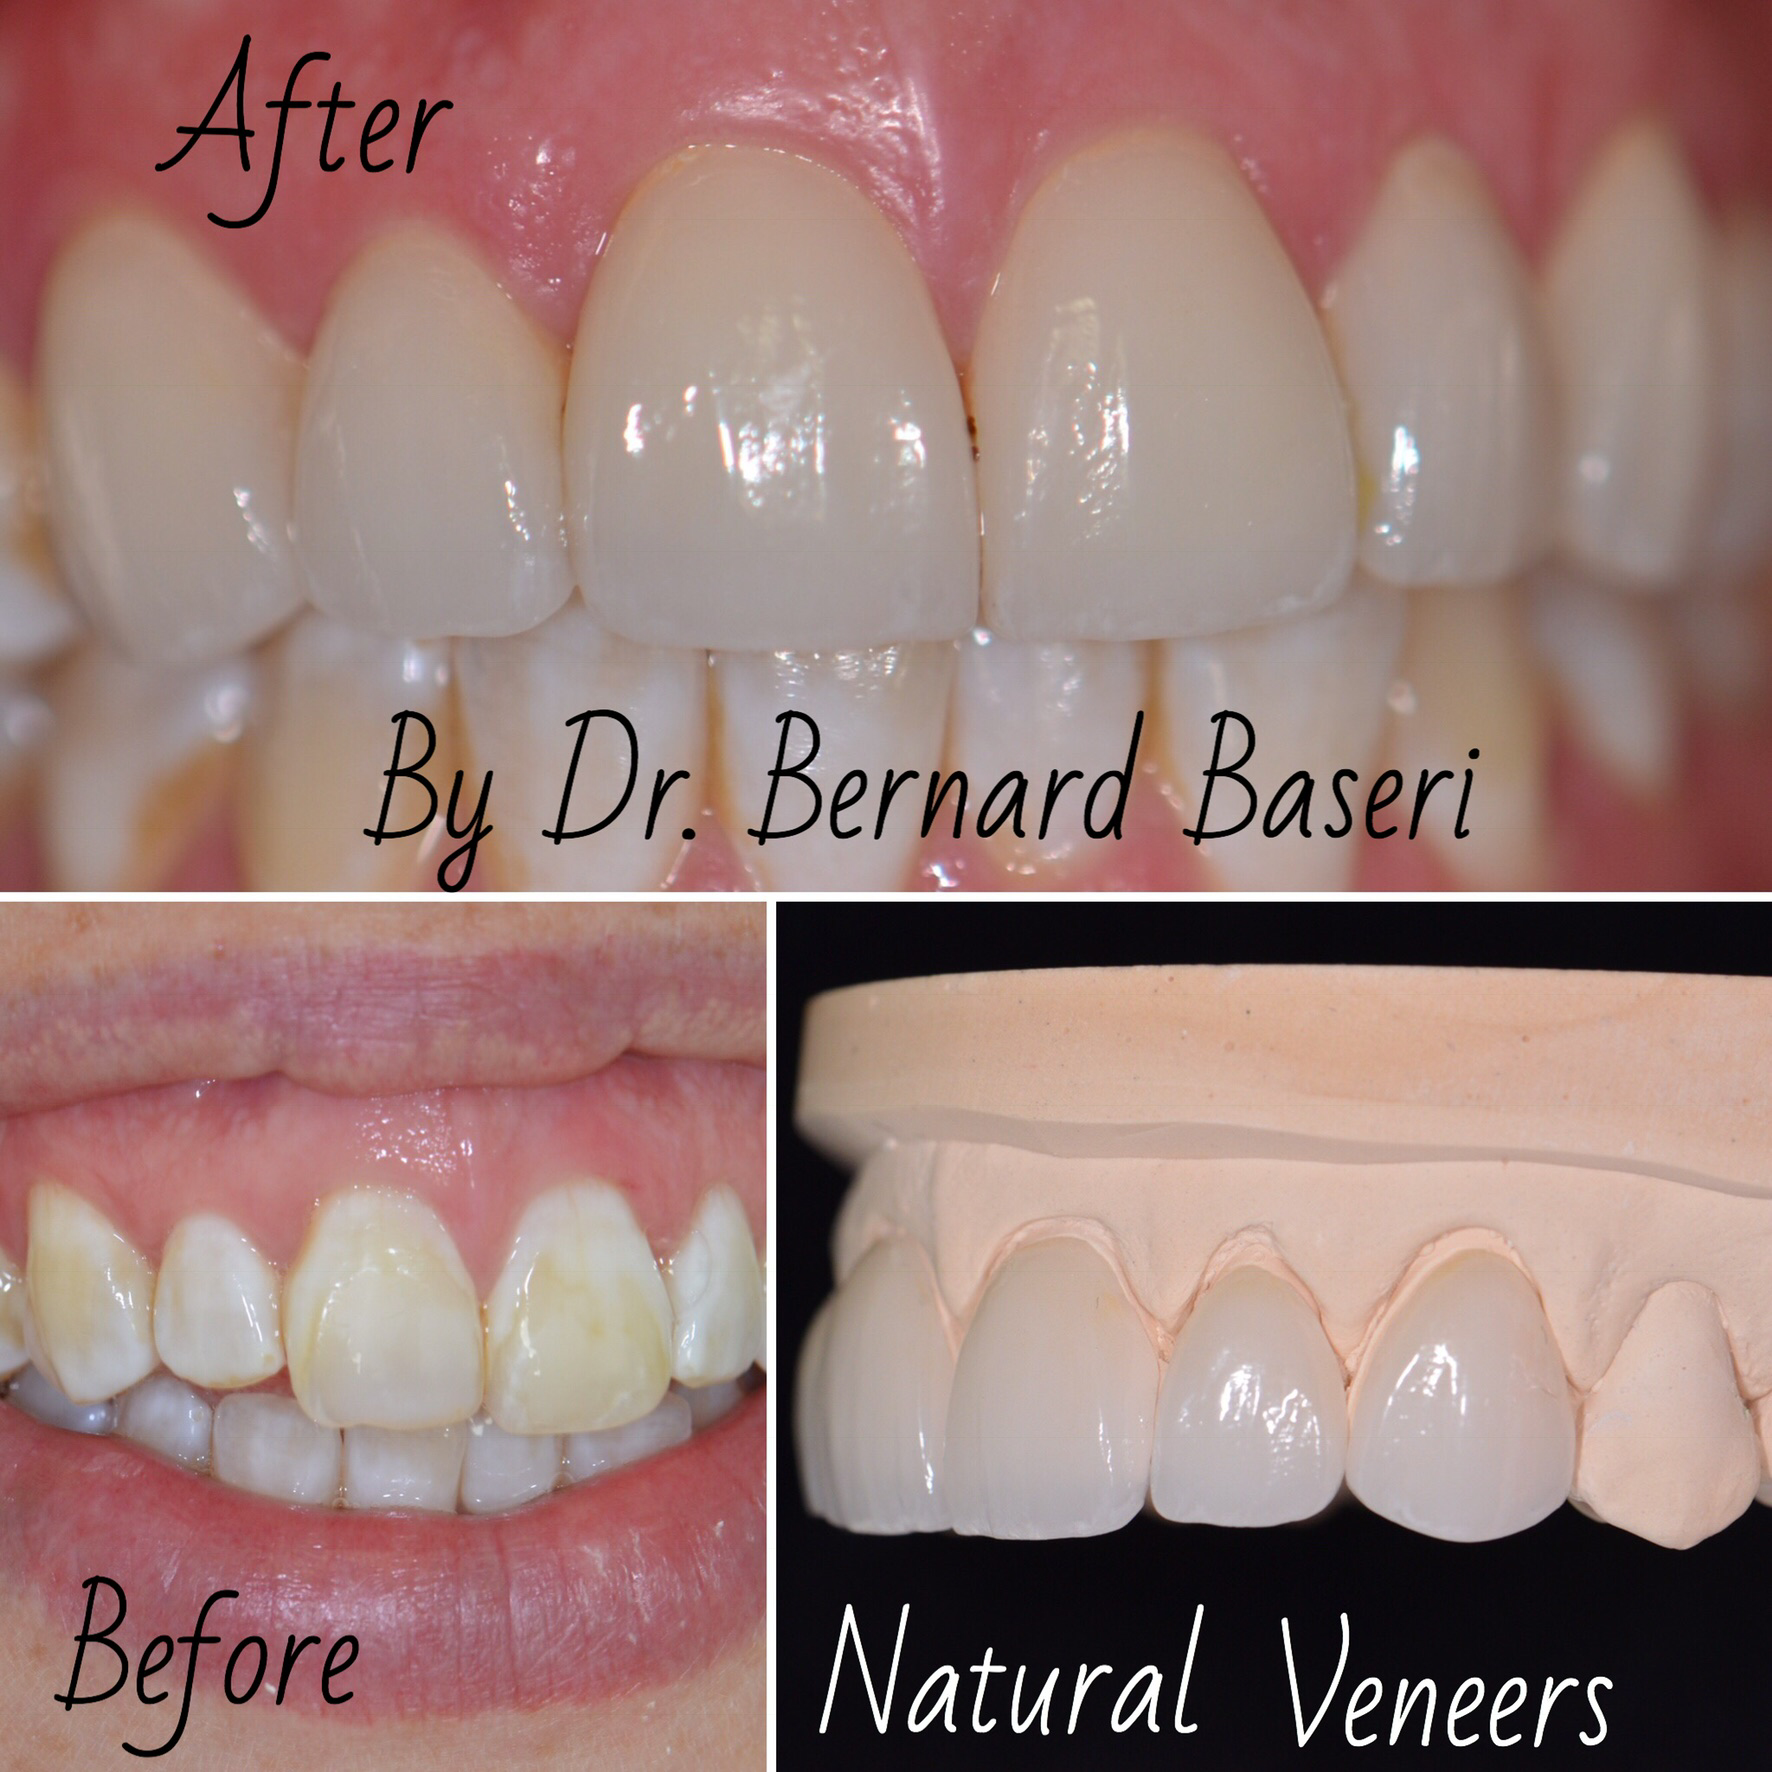 Tetracycline stained teeth restored with porcelain veneers